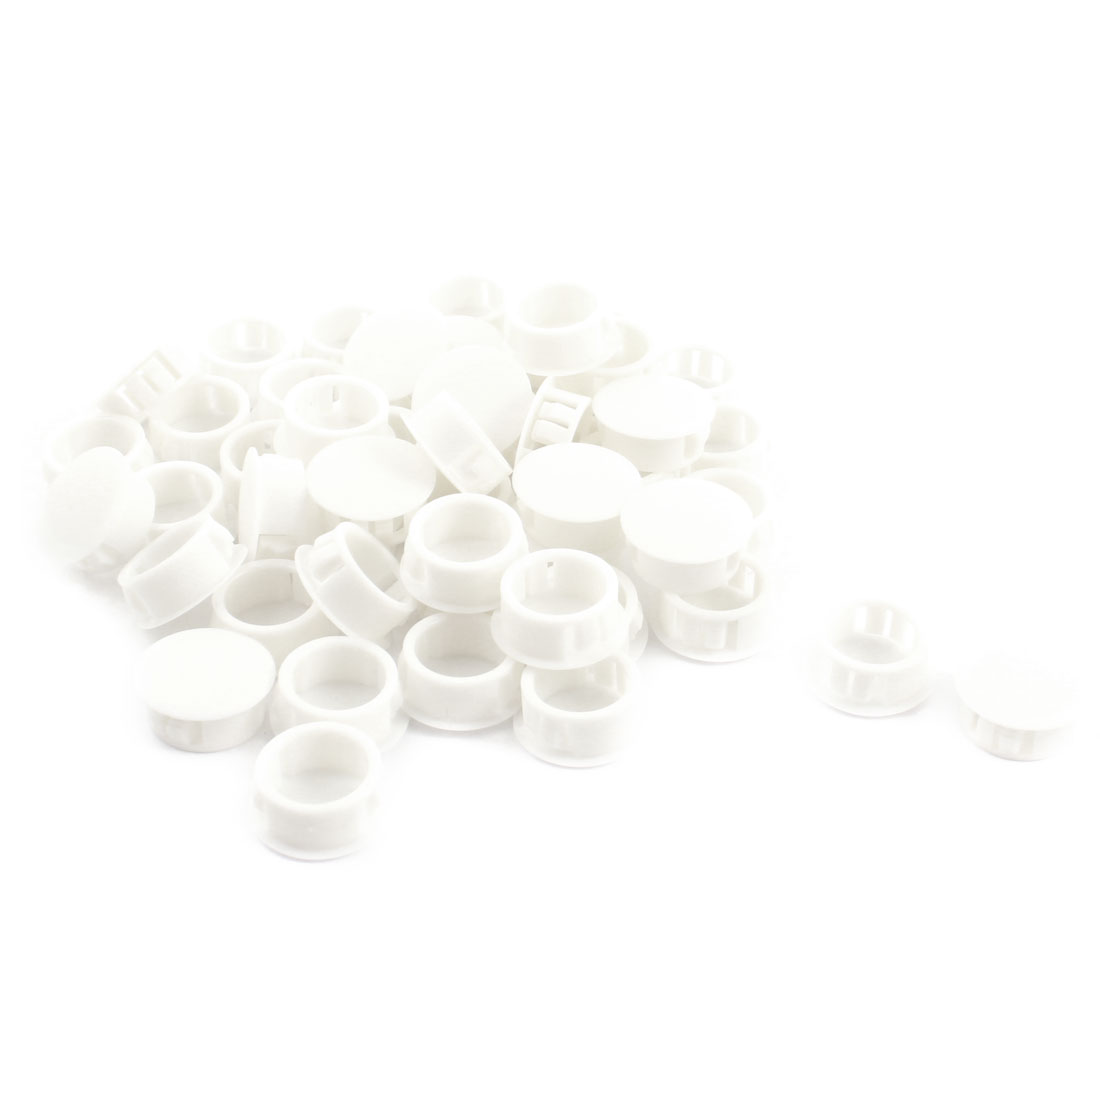 50 Pcs SKT-20 20.1mm Insulated White Plastic Snap in Mounting Locking Hole Cover Harness Fastener